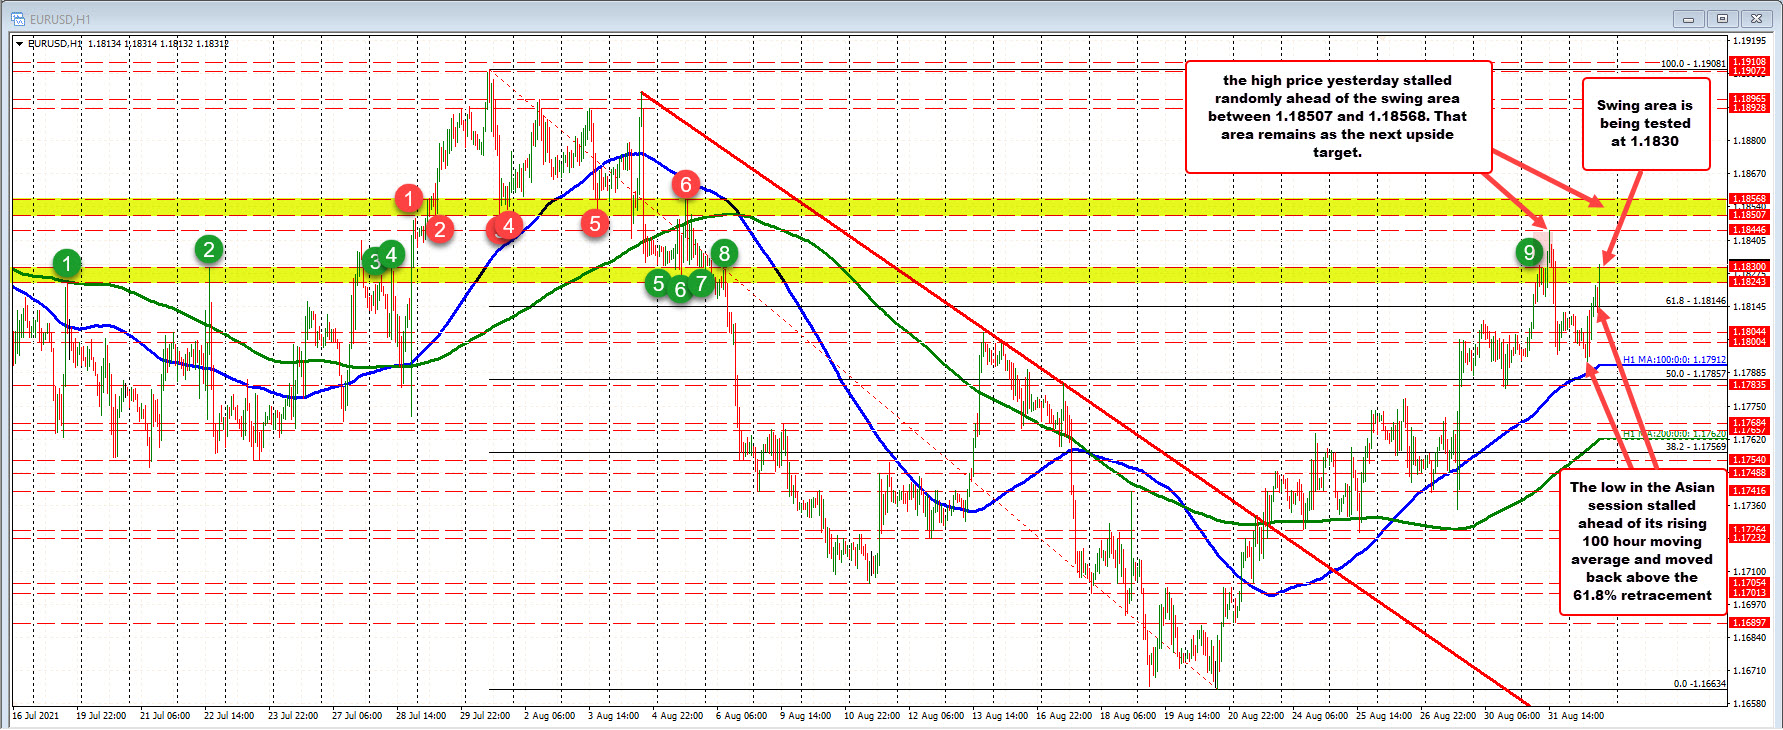 Correction lower sniffed the 100 hour moving average. Price stays above._